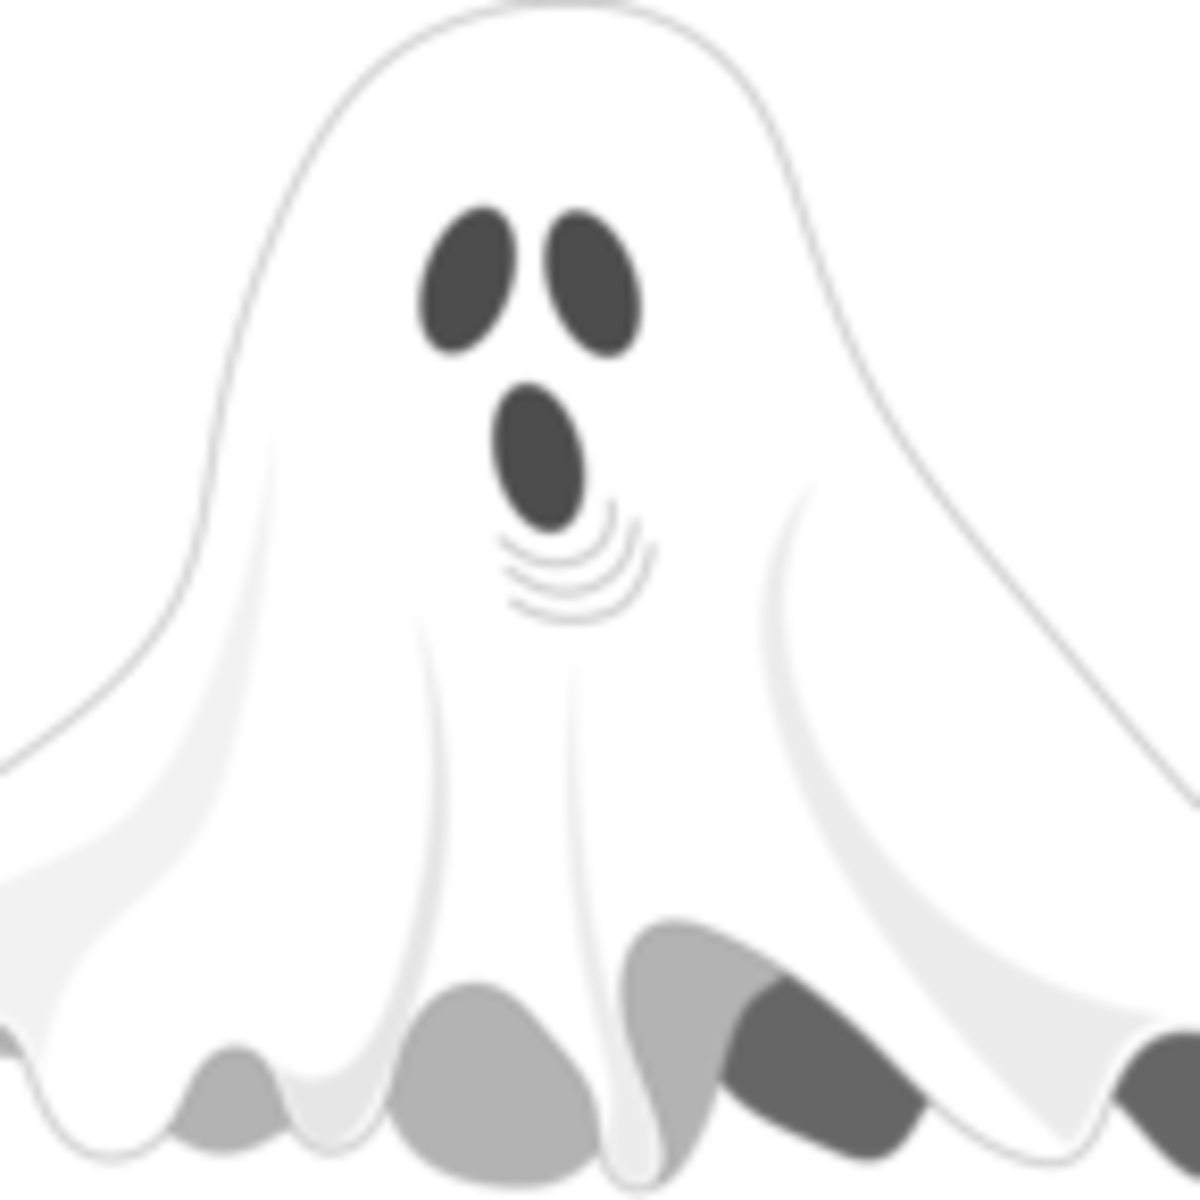 Ghost clipart for ghosting picture freeuse What Do We Know About Ghosting? | Psychology Today picture freeuse